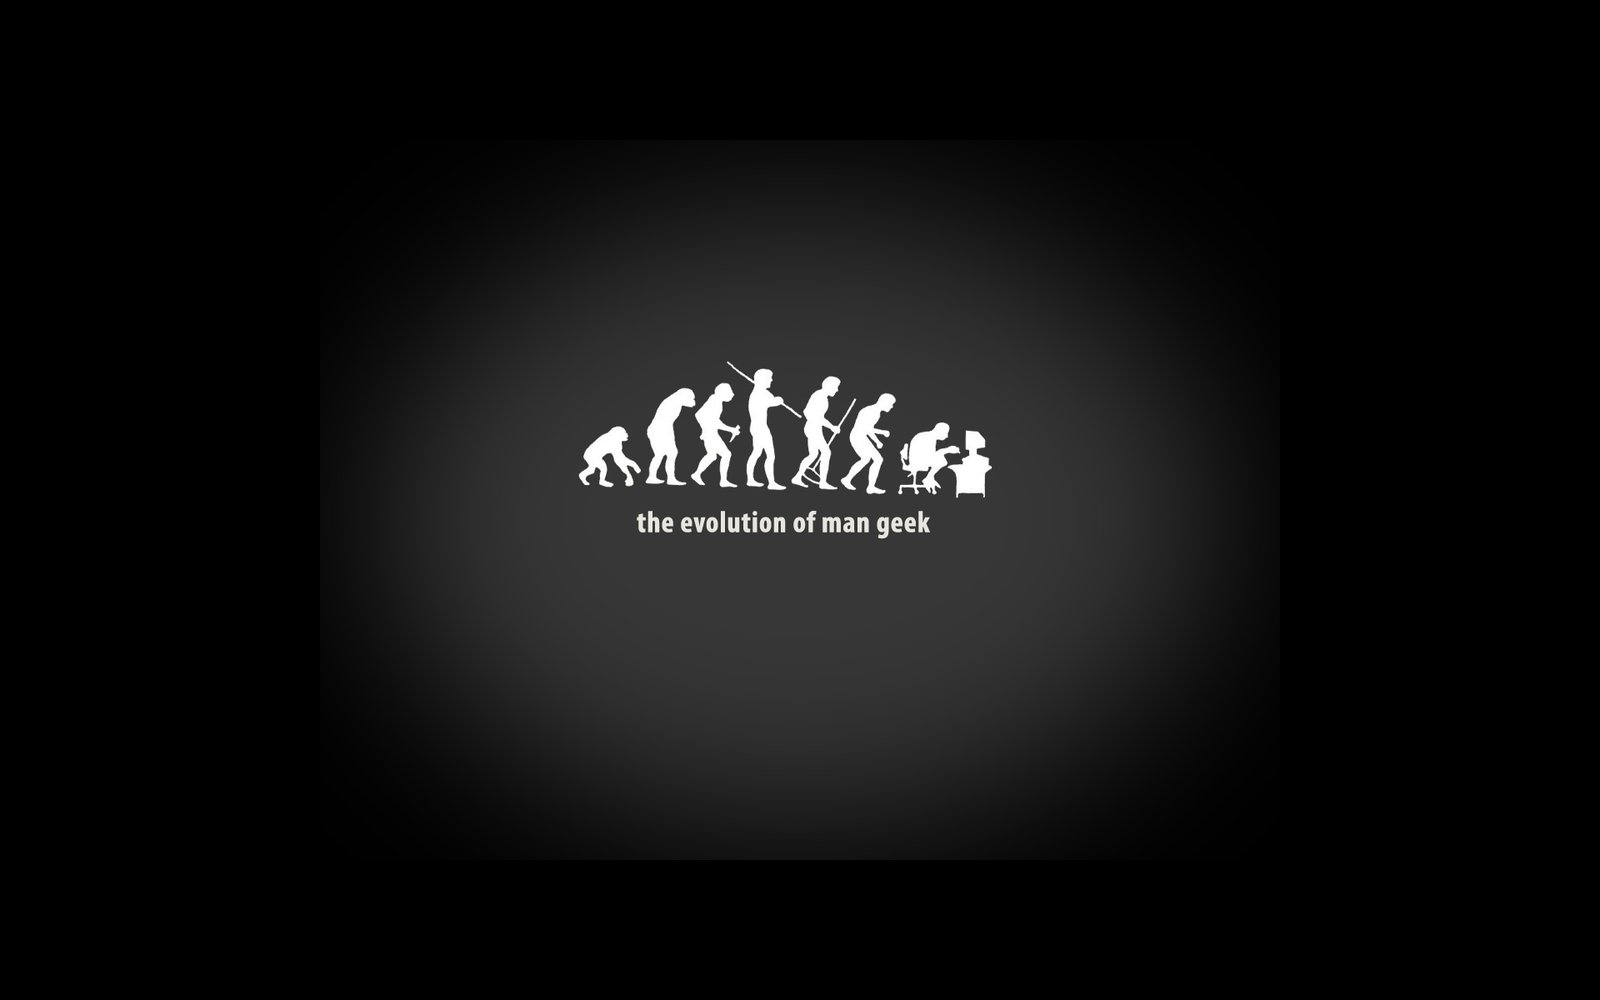 The-evolution-of-man-geek-wallpaper